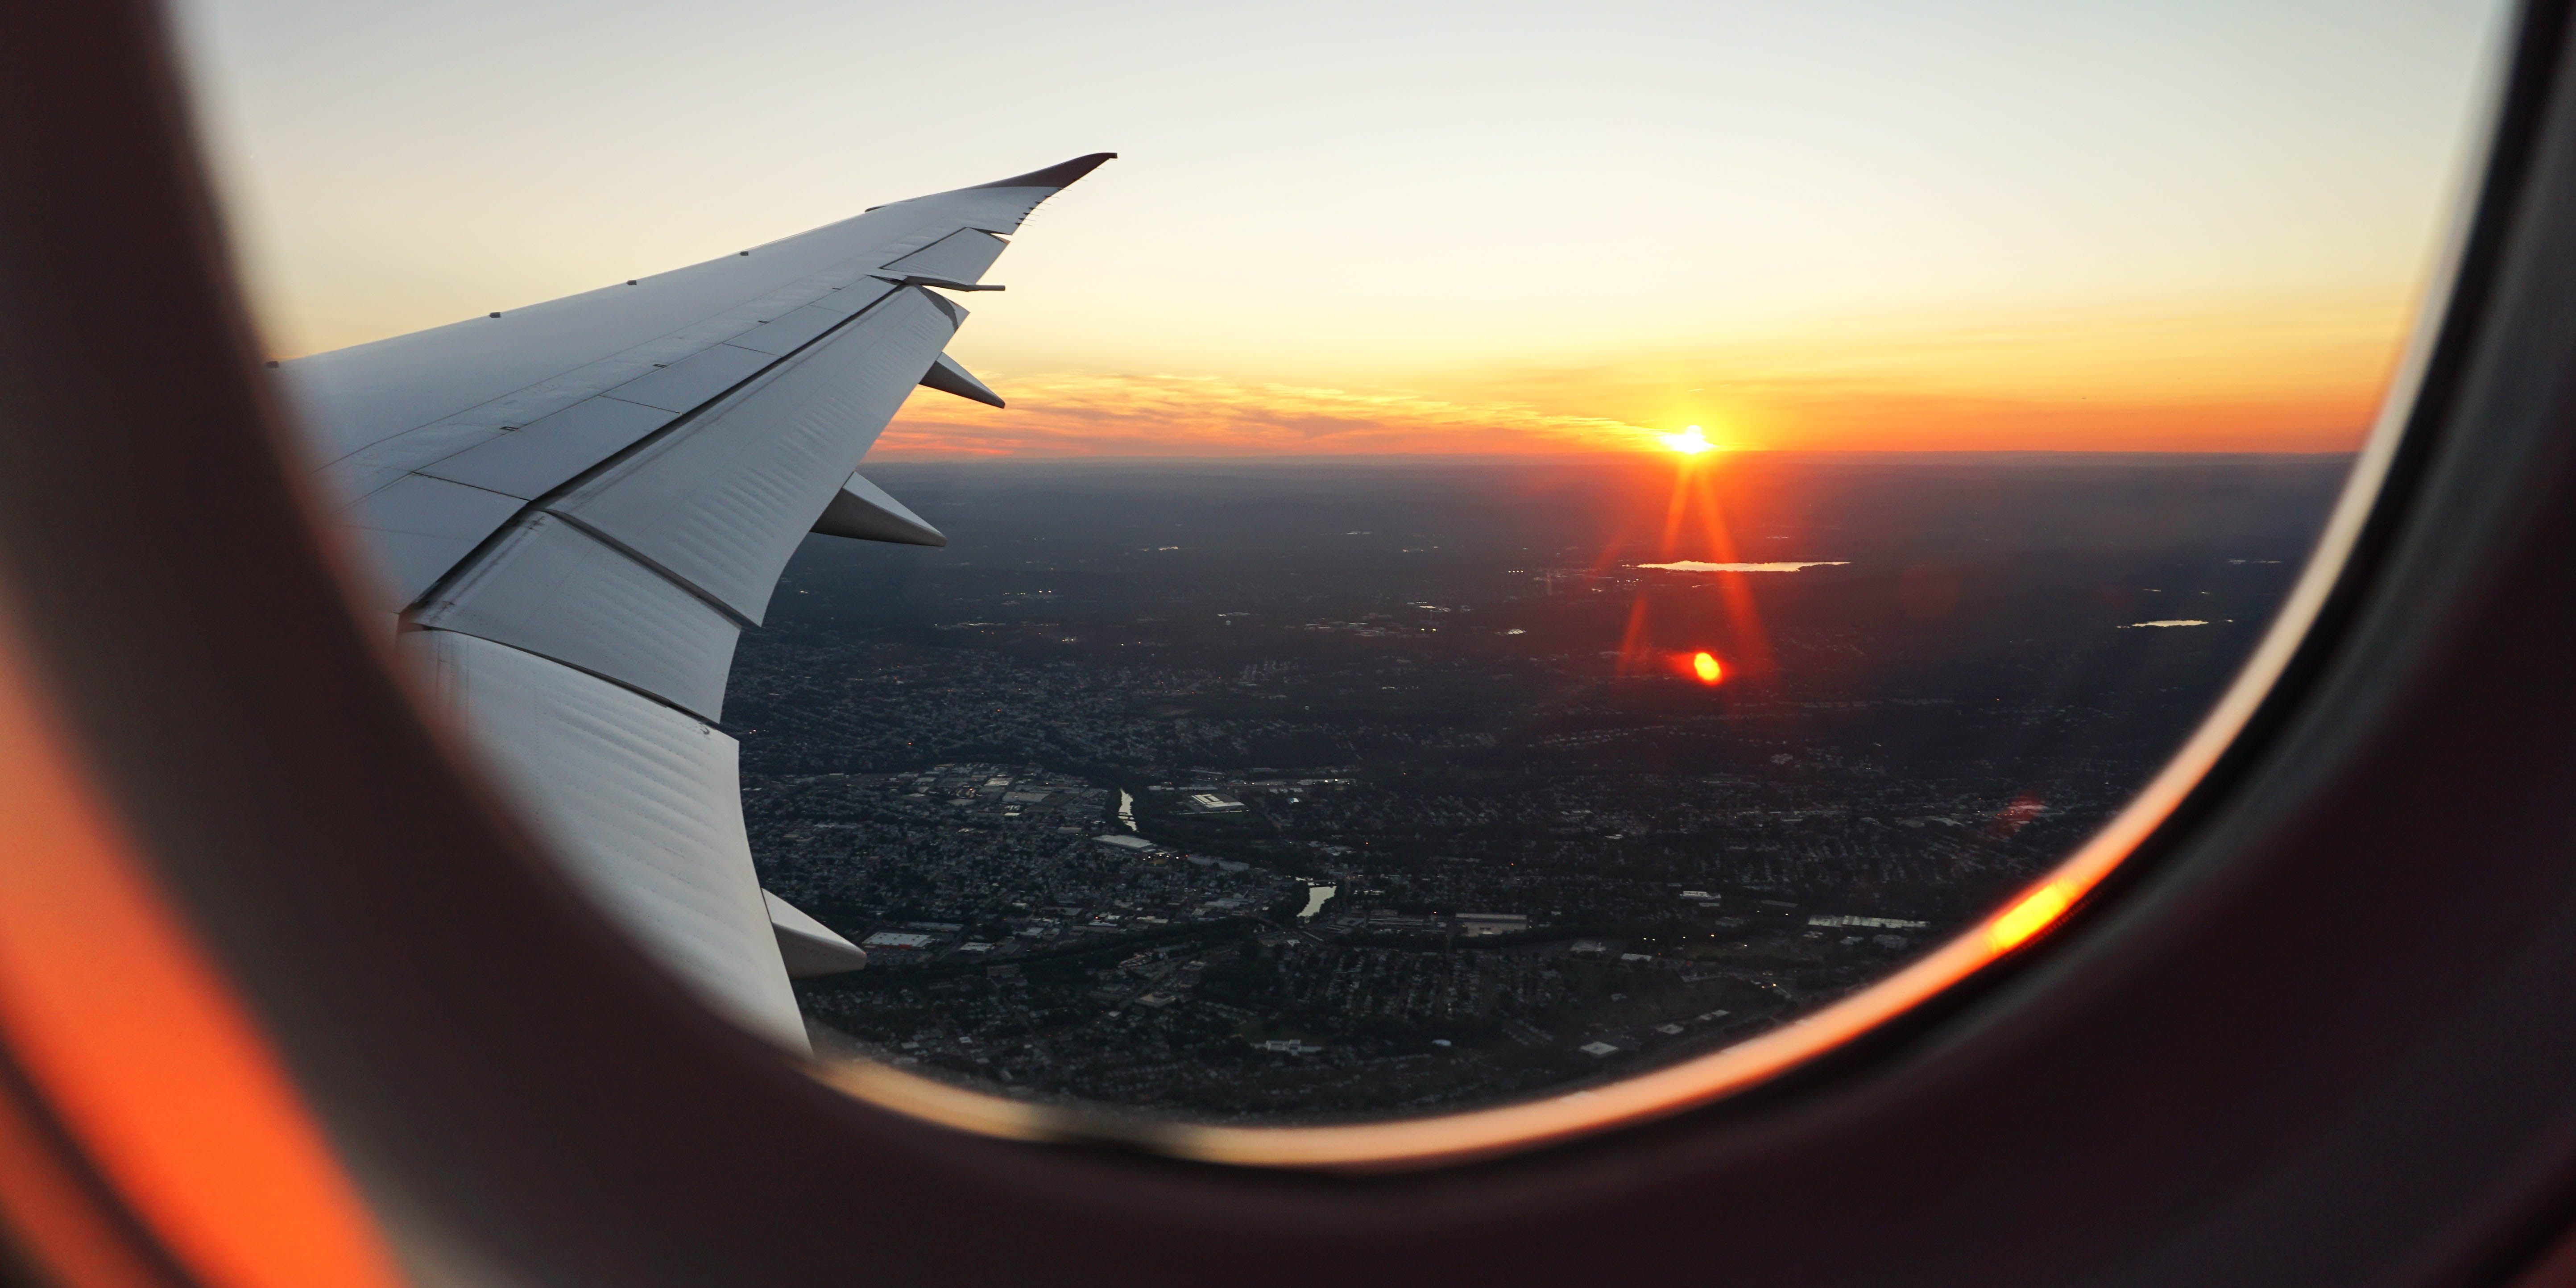 View from the window of an airplane. As of October 17, travellers can bring cannabis on domestic flights in Canada.